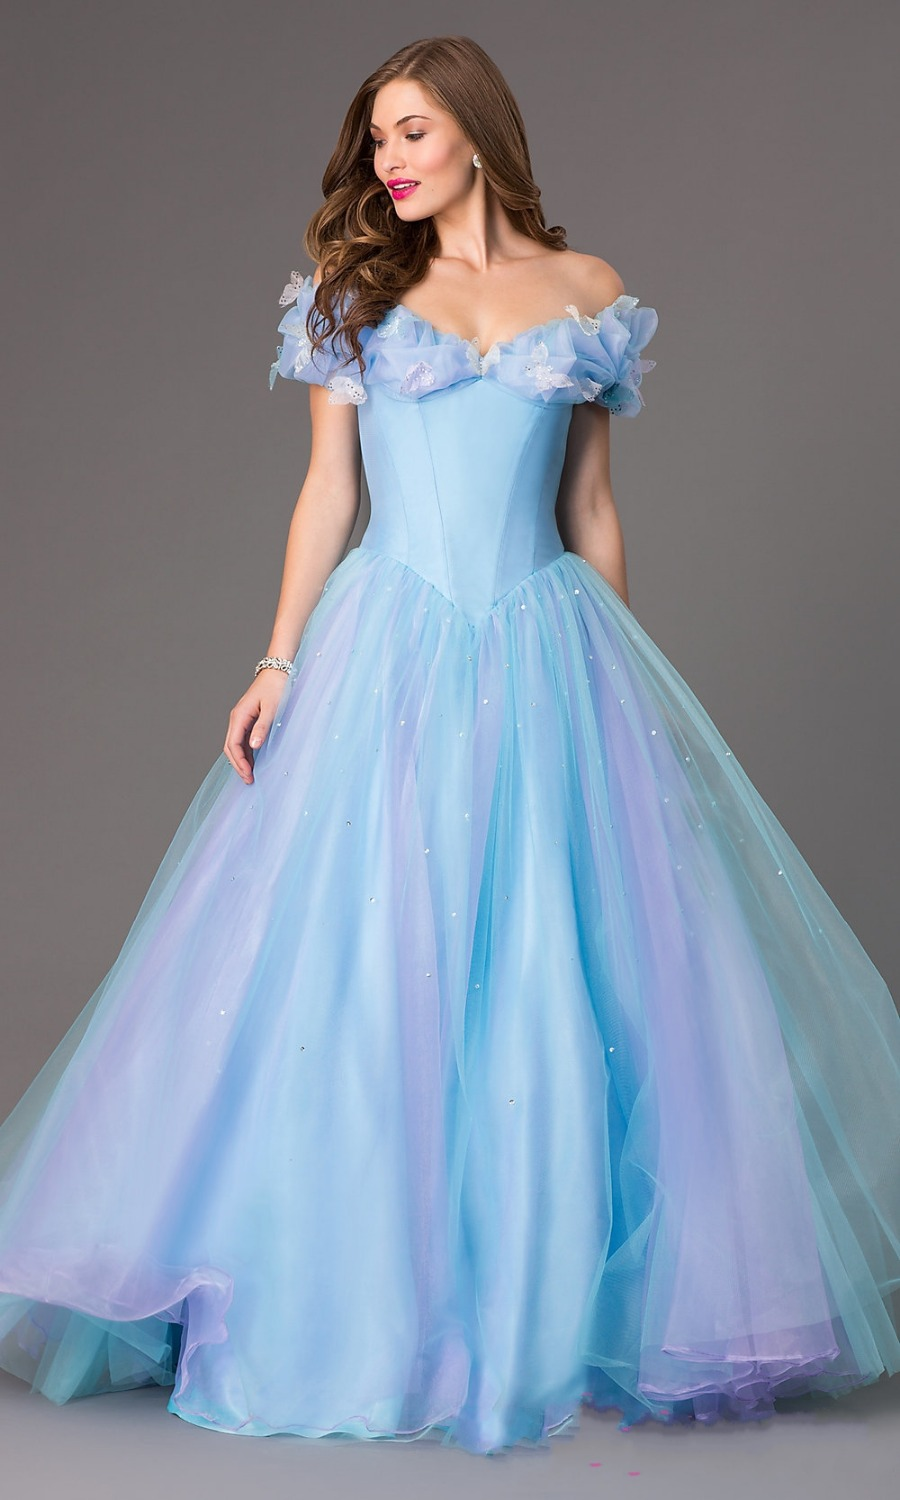 2015 Hot selling ice blue prom dresses for girls MP00 same style as ...